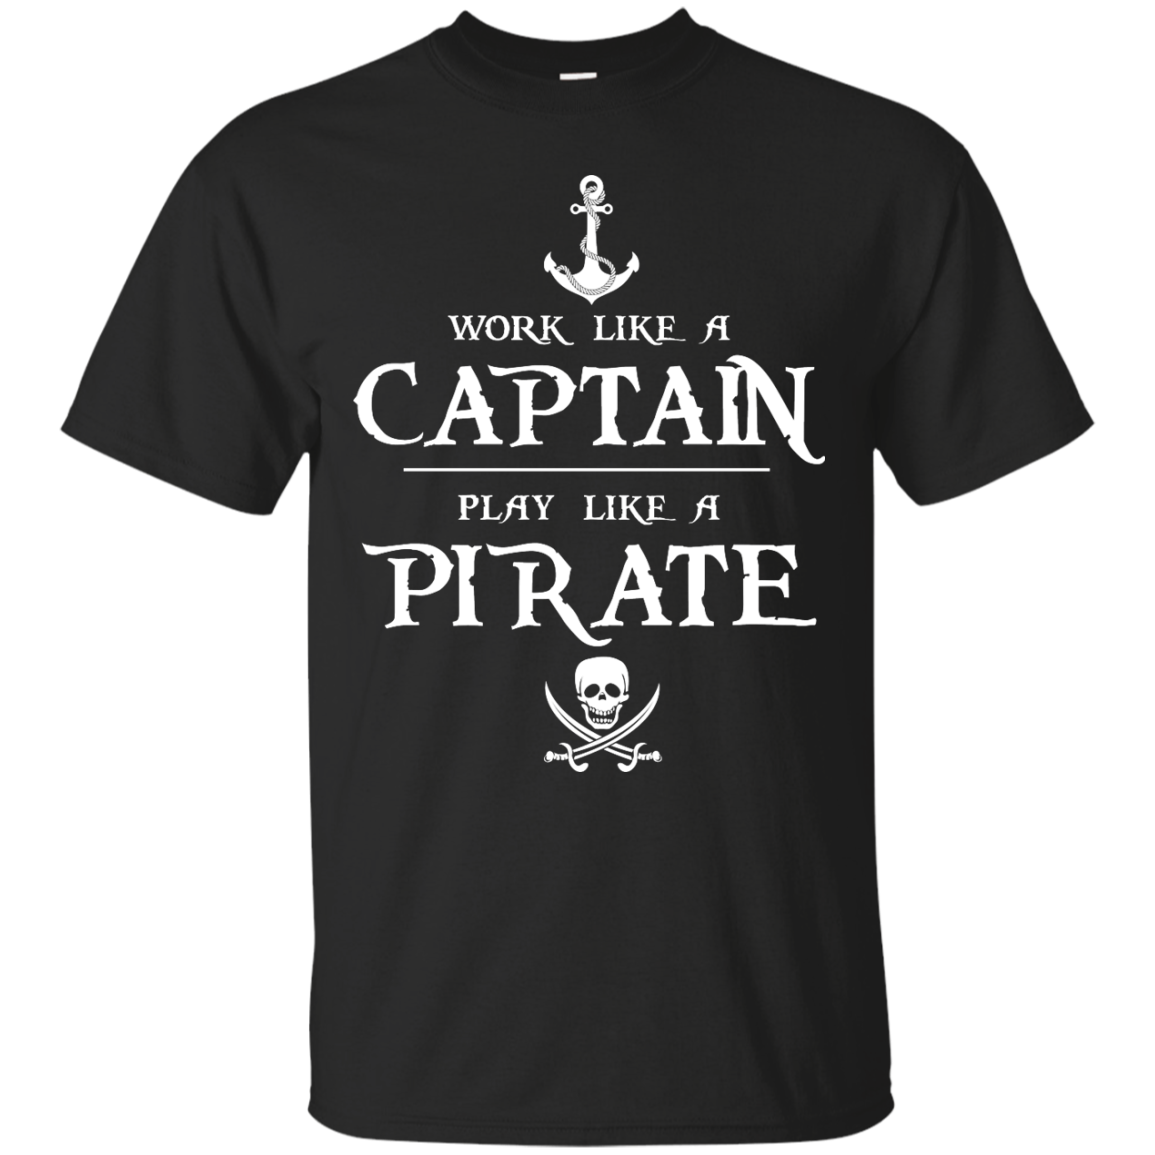 Work like a captain, play like a pirate unisex t shirt, tank, hoodie